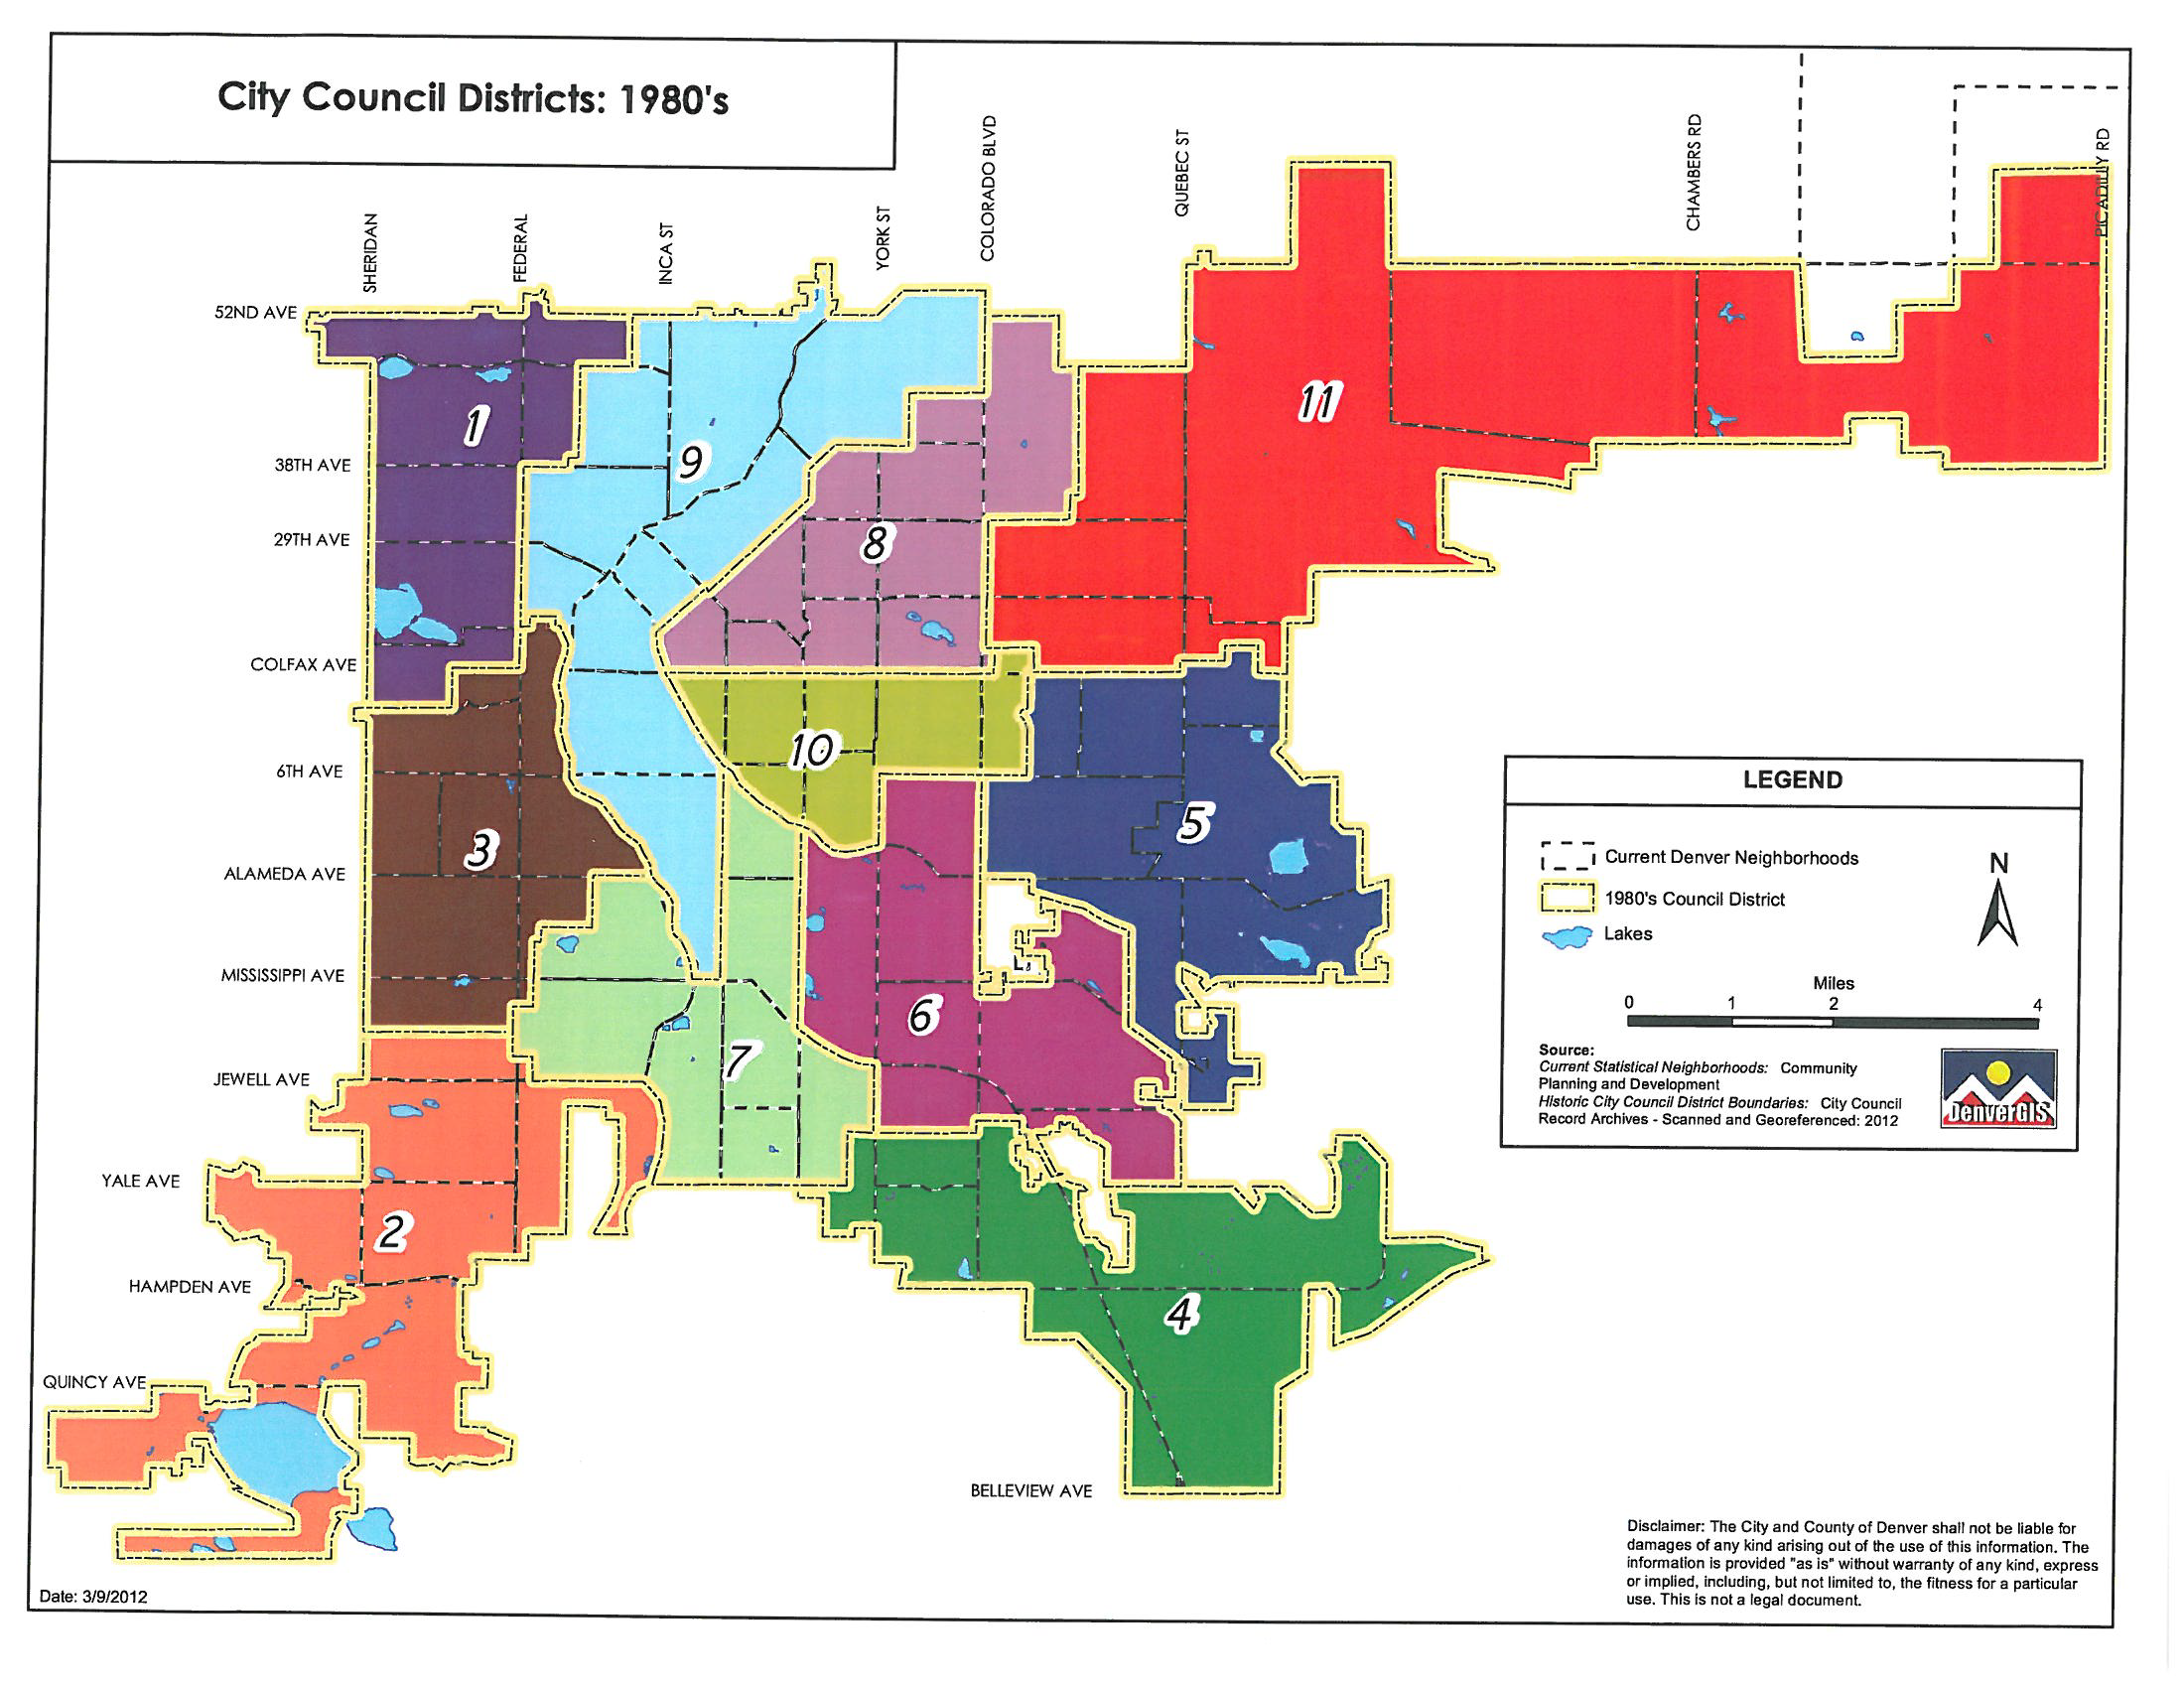 1980's Denver council districts map